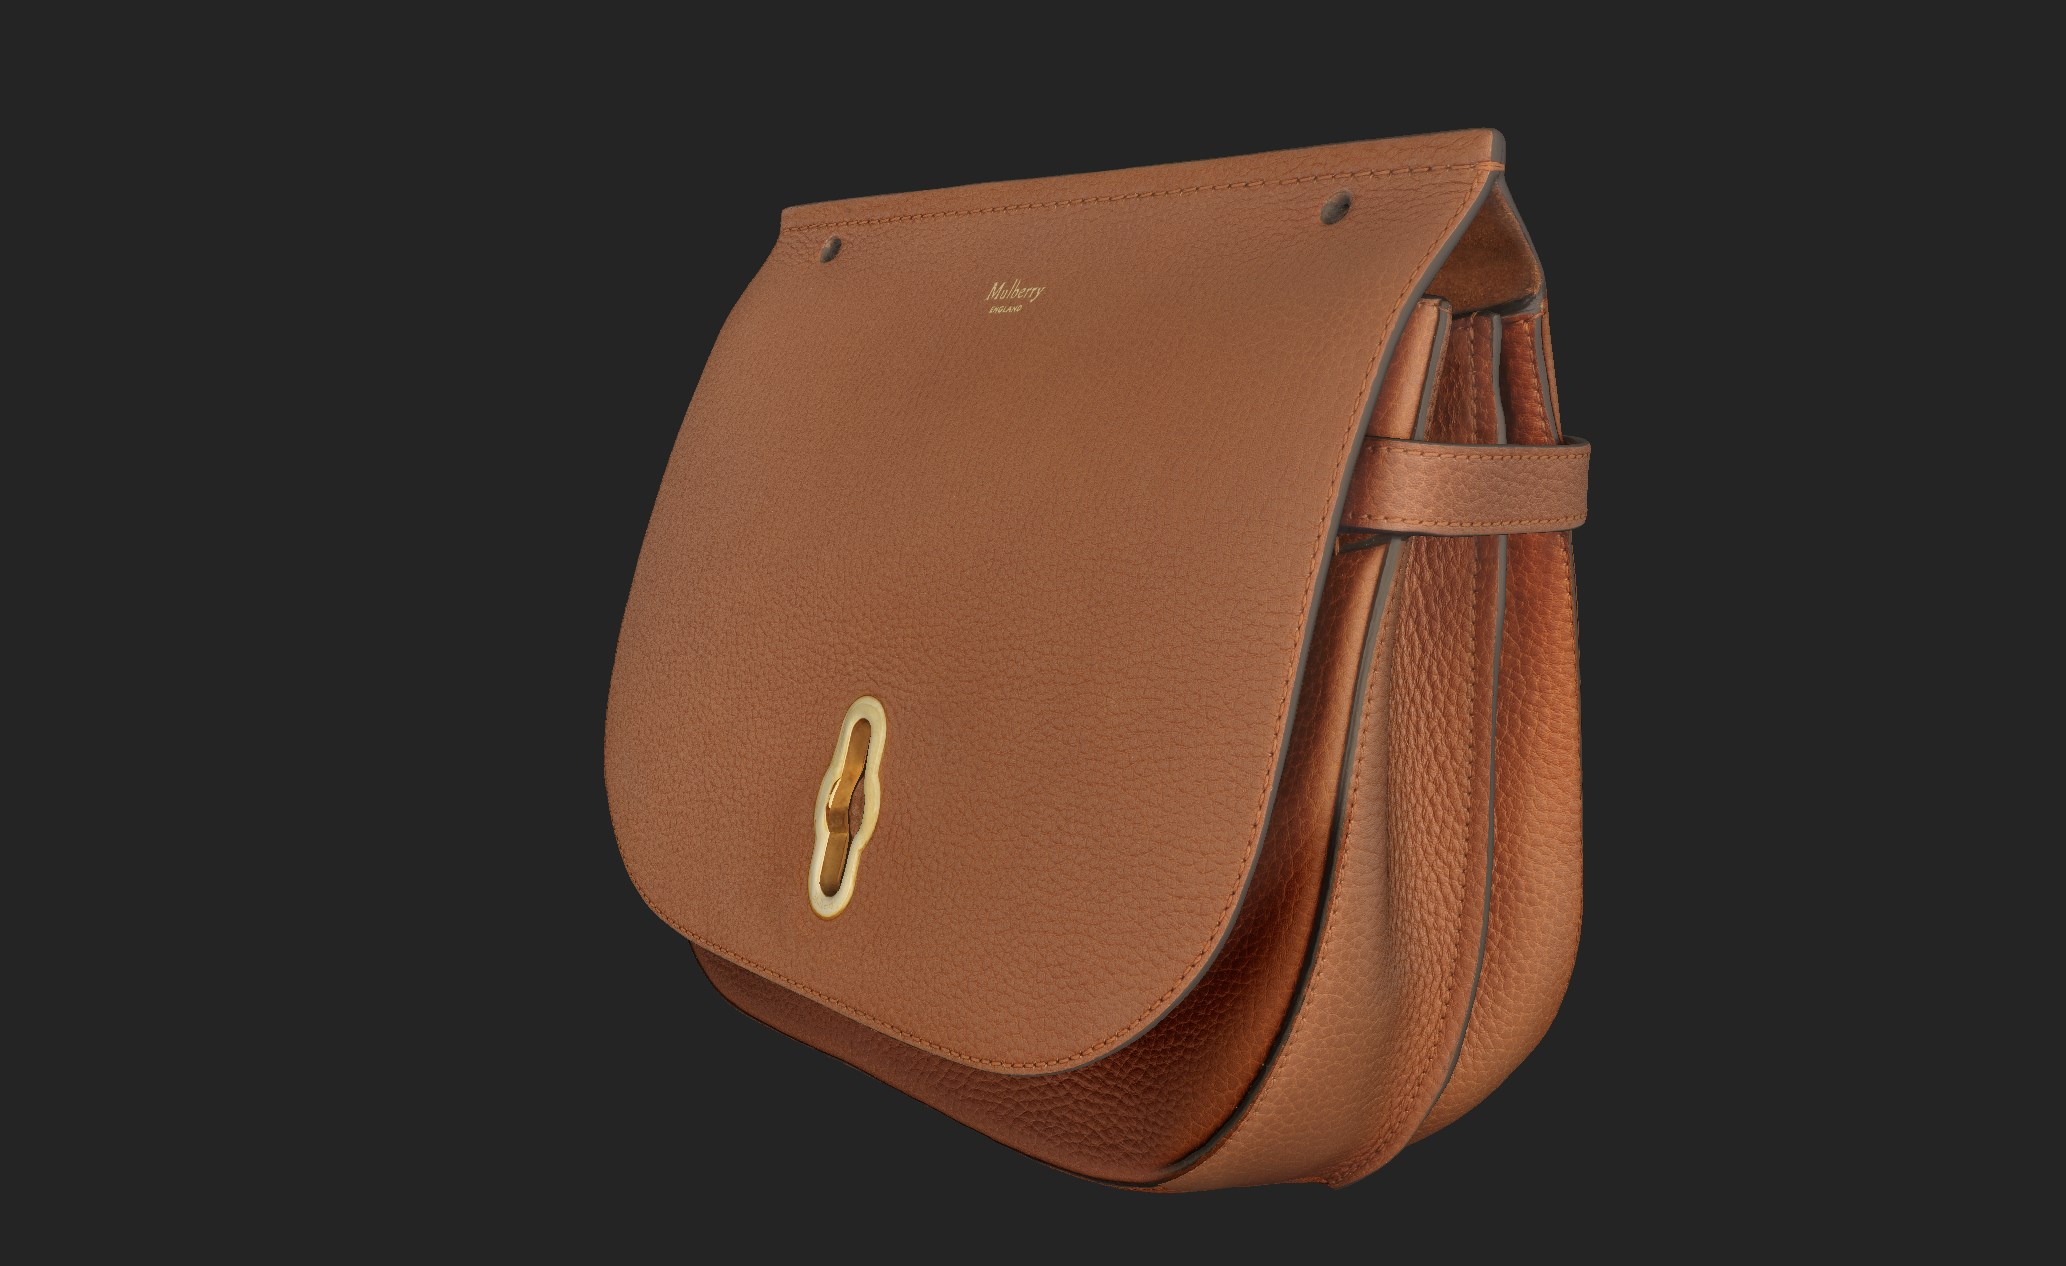 Image of brown mulberry bag put together using photogrammetry, Fashion Innovation Agency